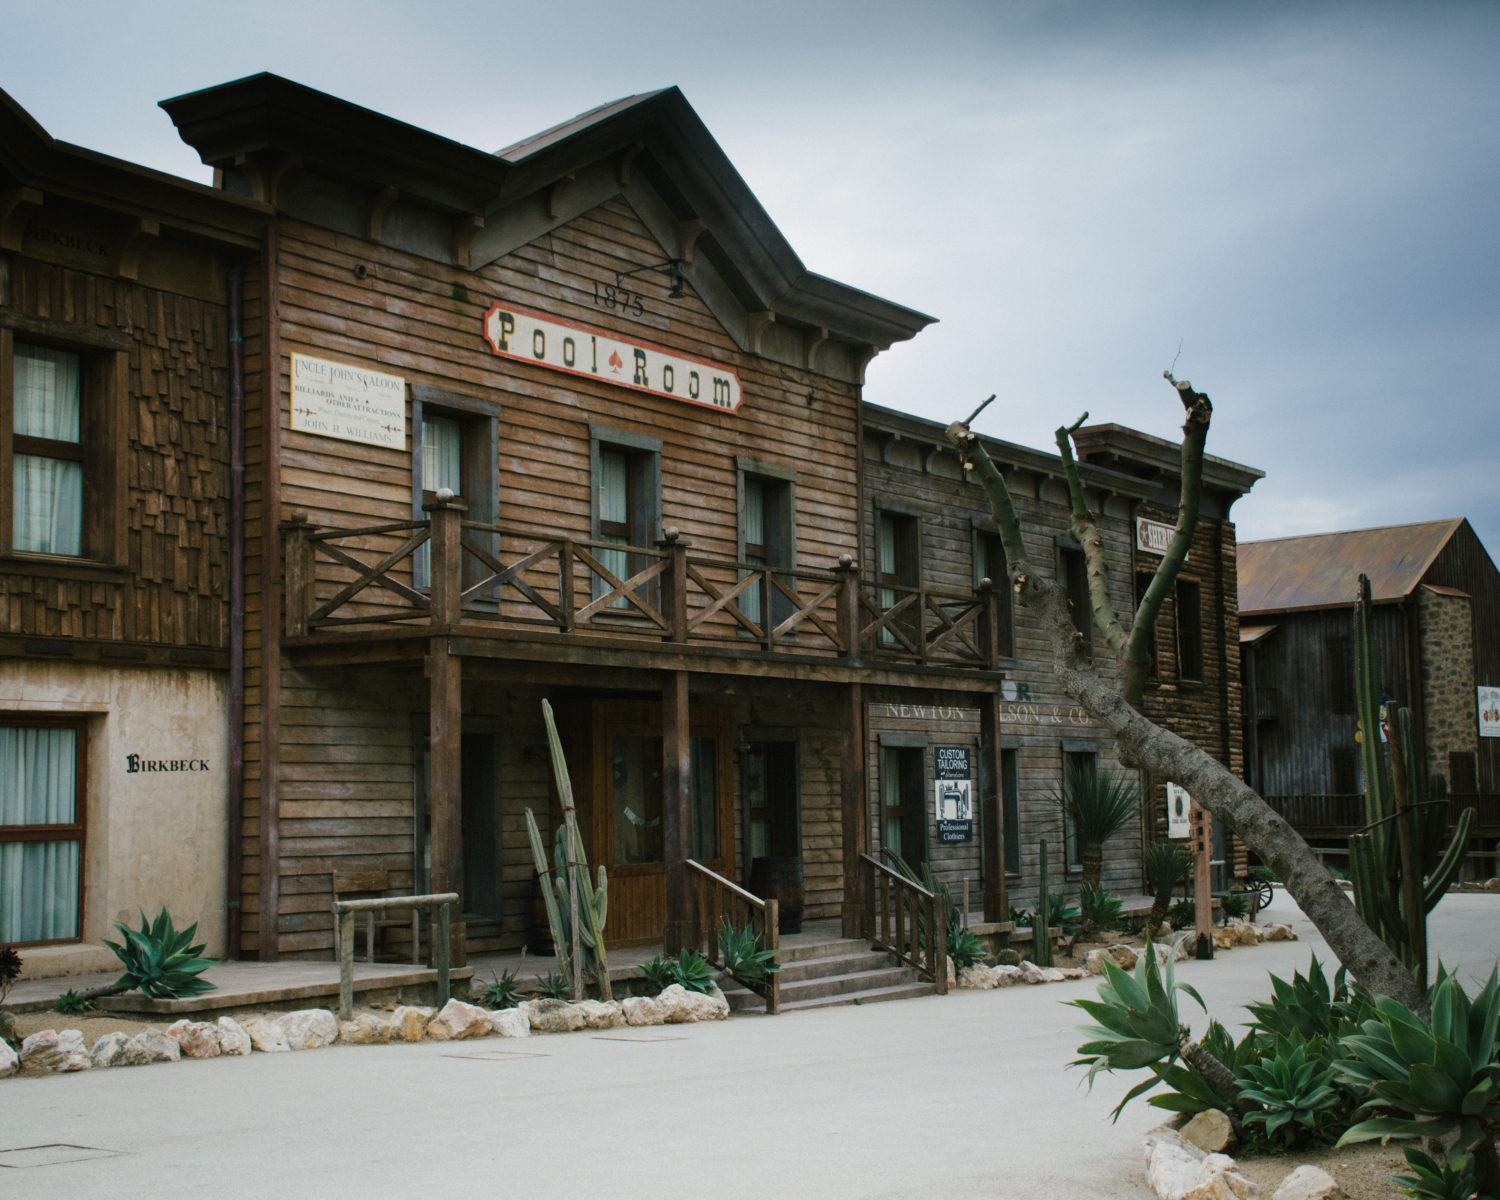 Cowboy facades at Gold River Hotel, Port Aventura Spain.